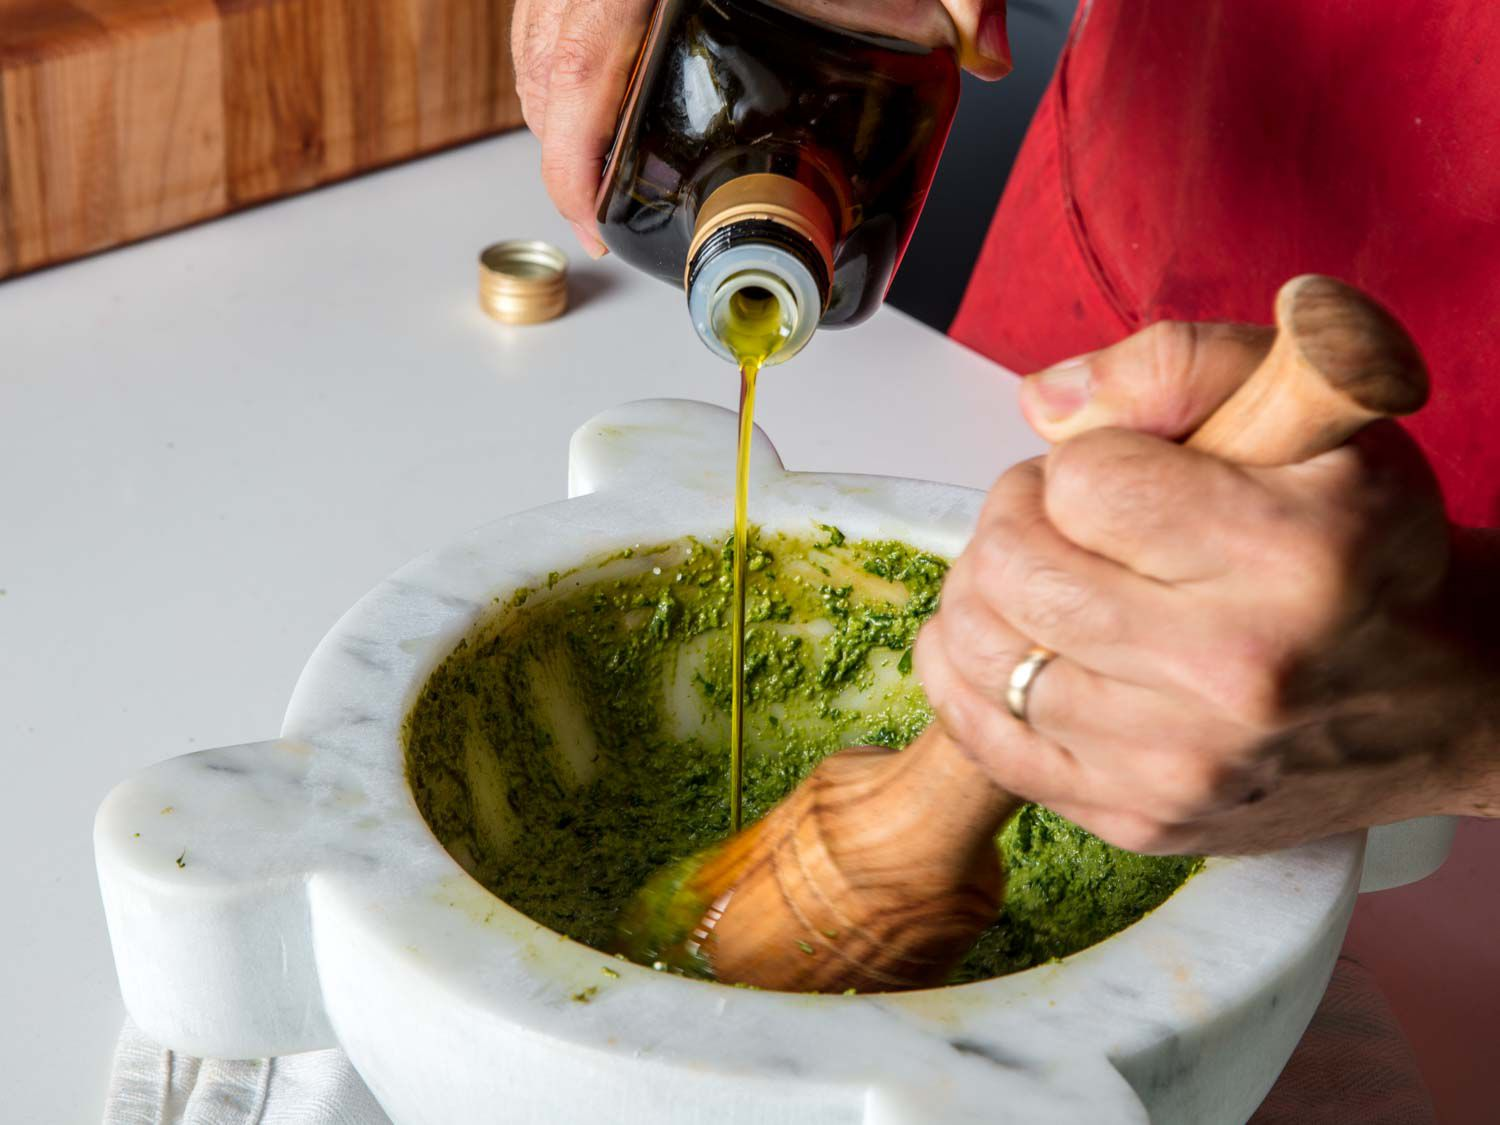 Drizzling olive oil into basil, pine nut, and garlic paste in a marble mortar to make into traditional pesto sauce.